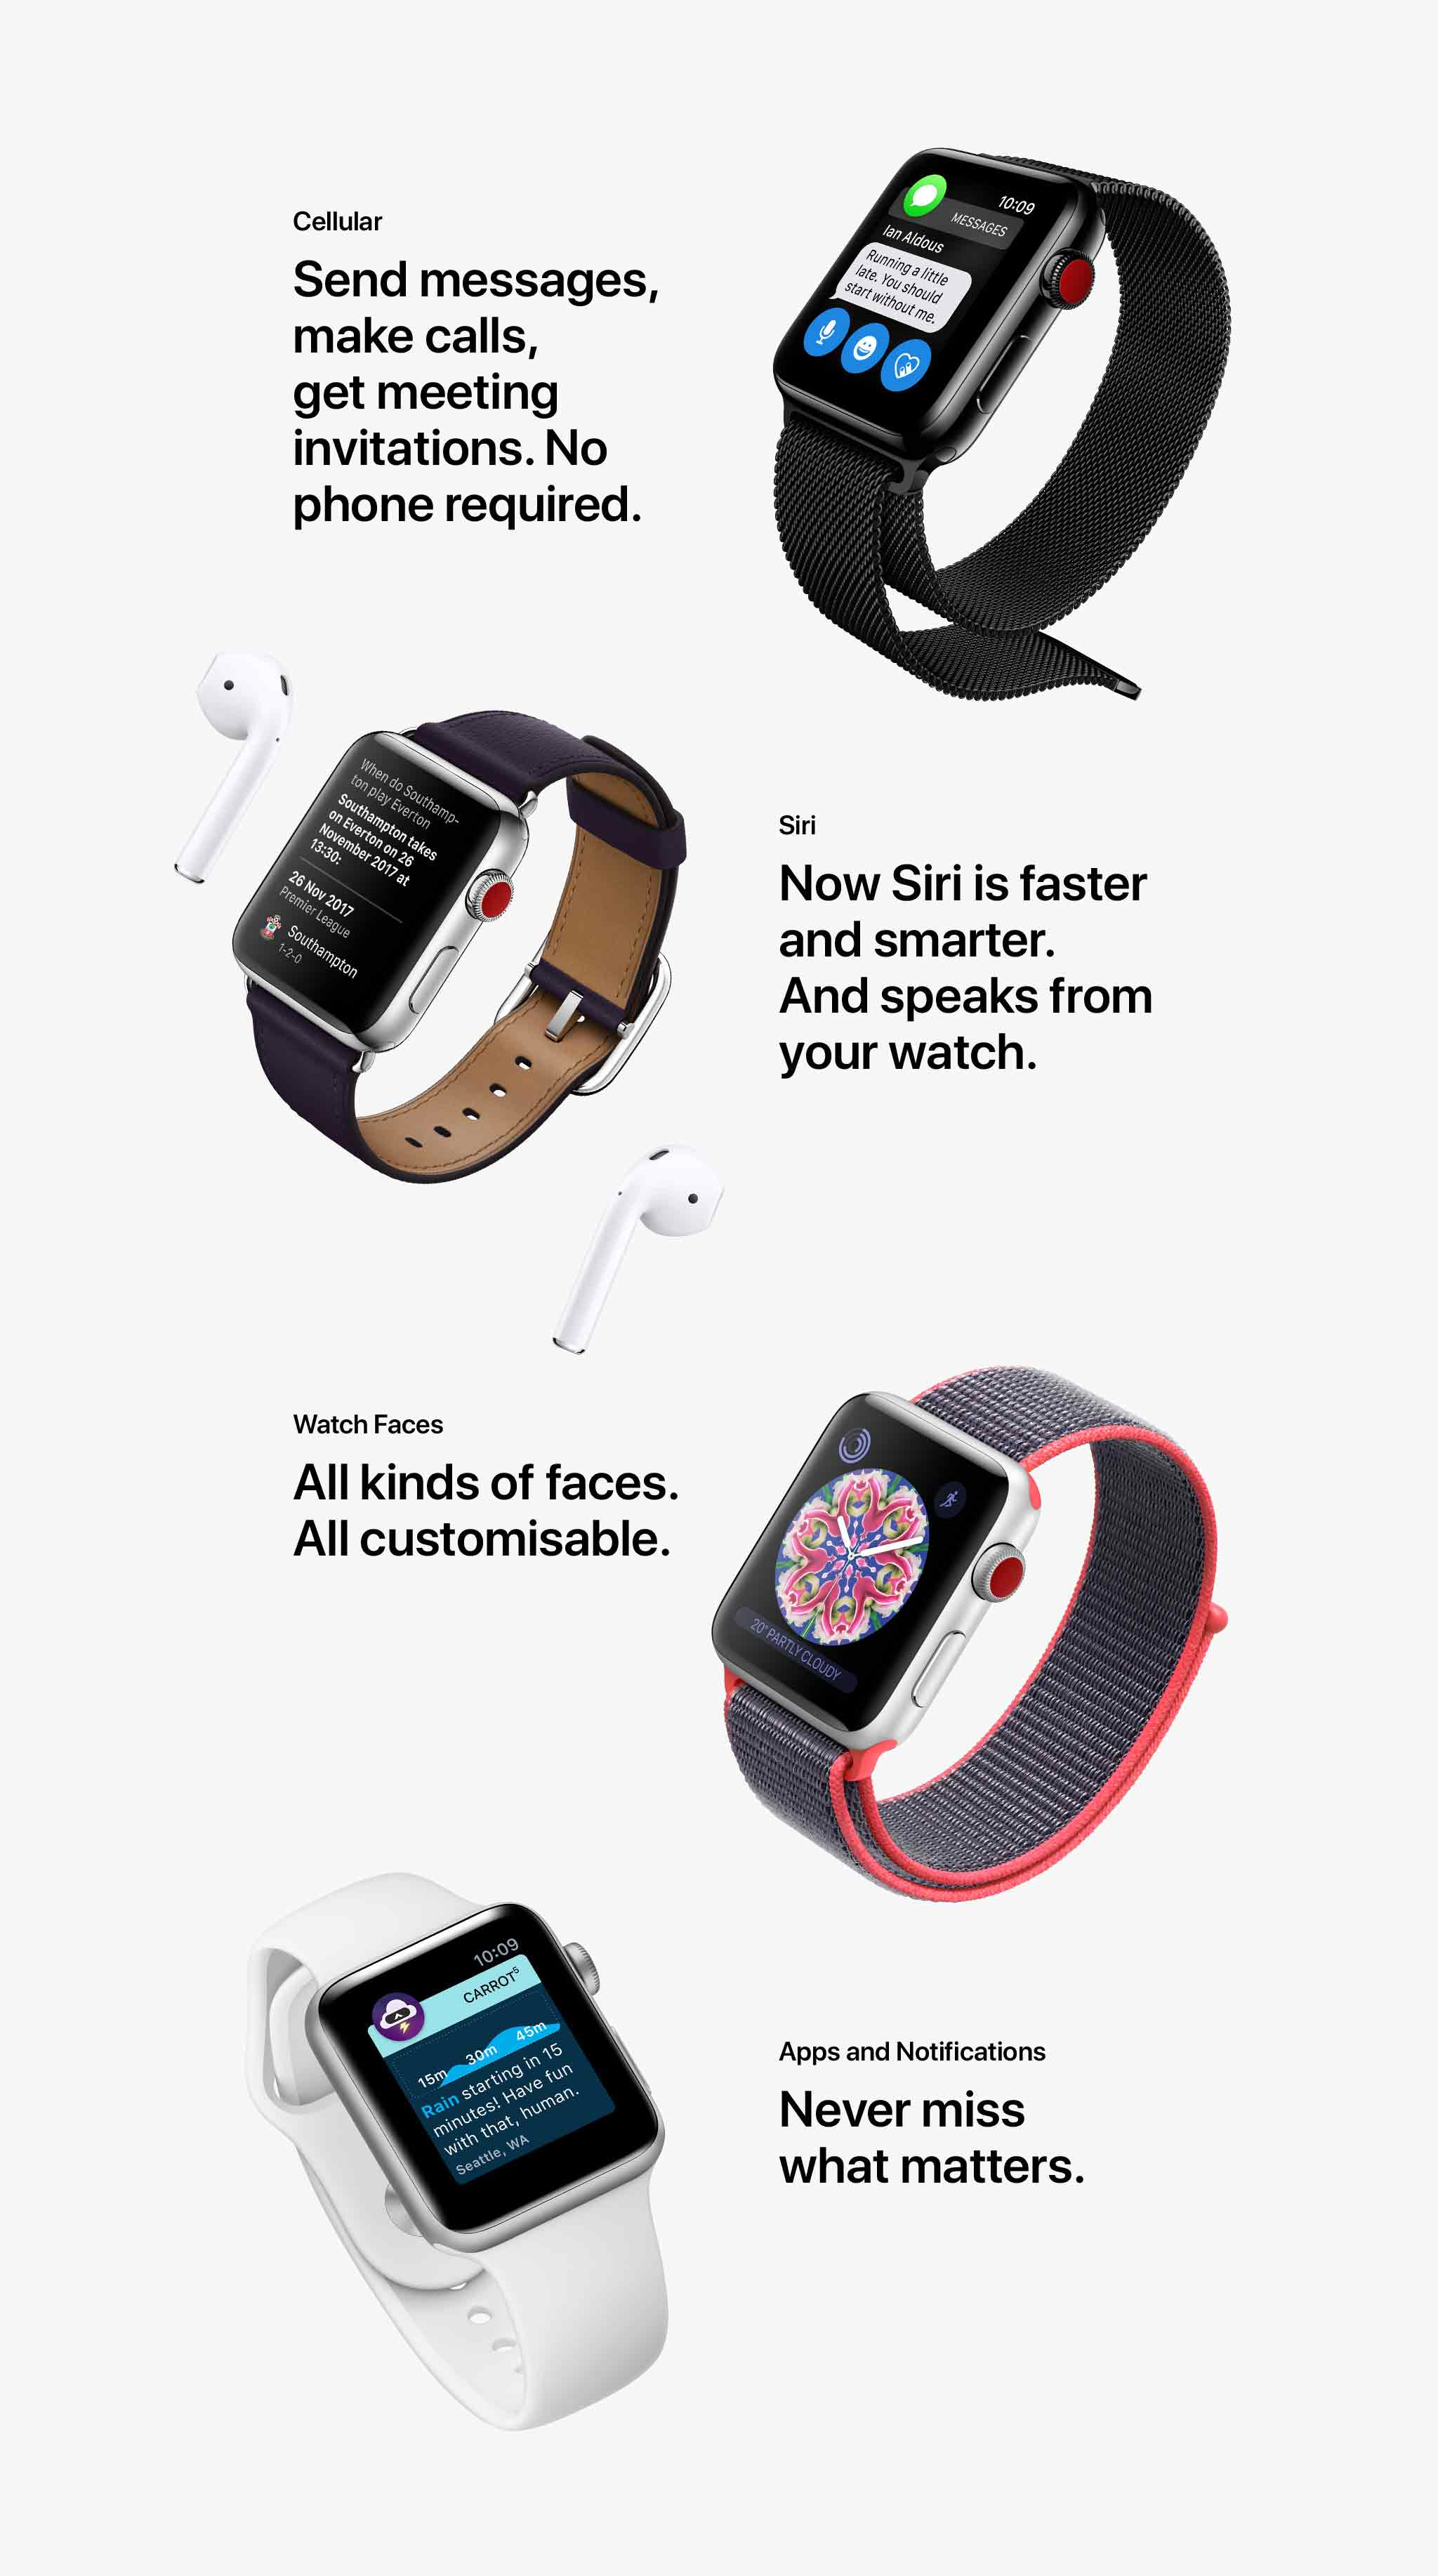 Apple Watch Series 3 extra features